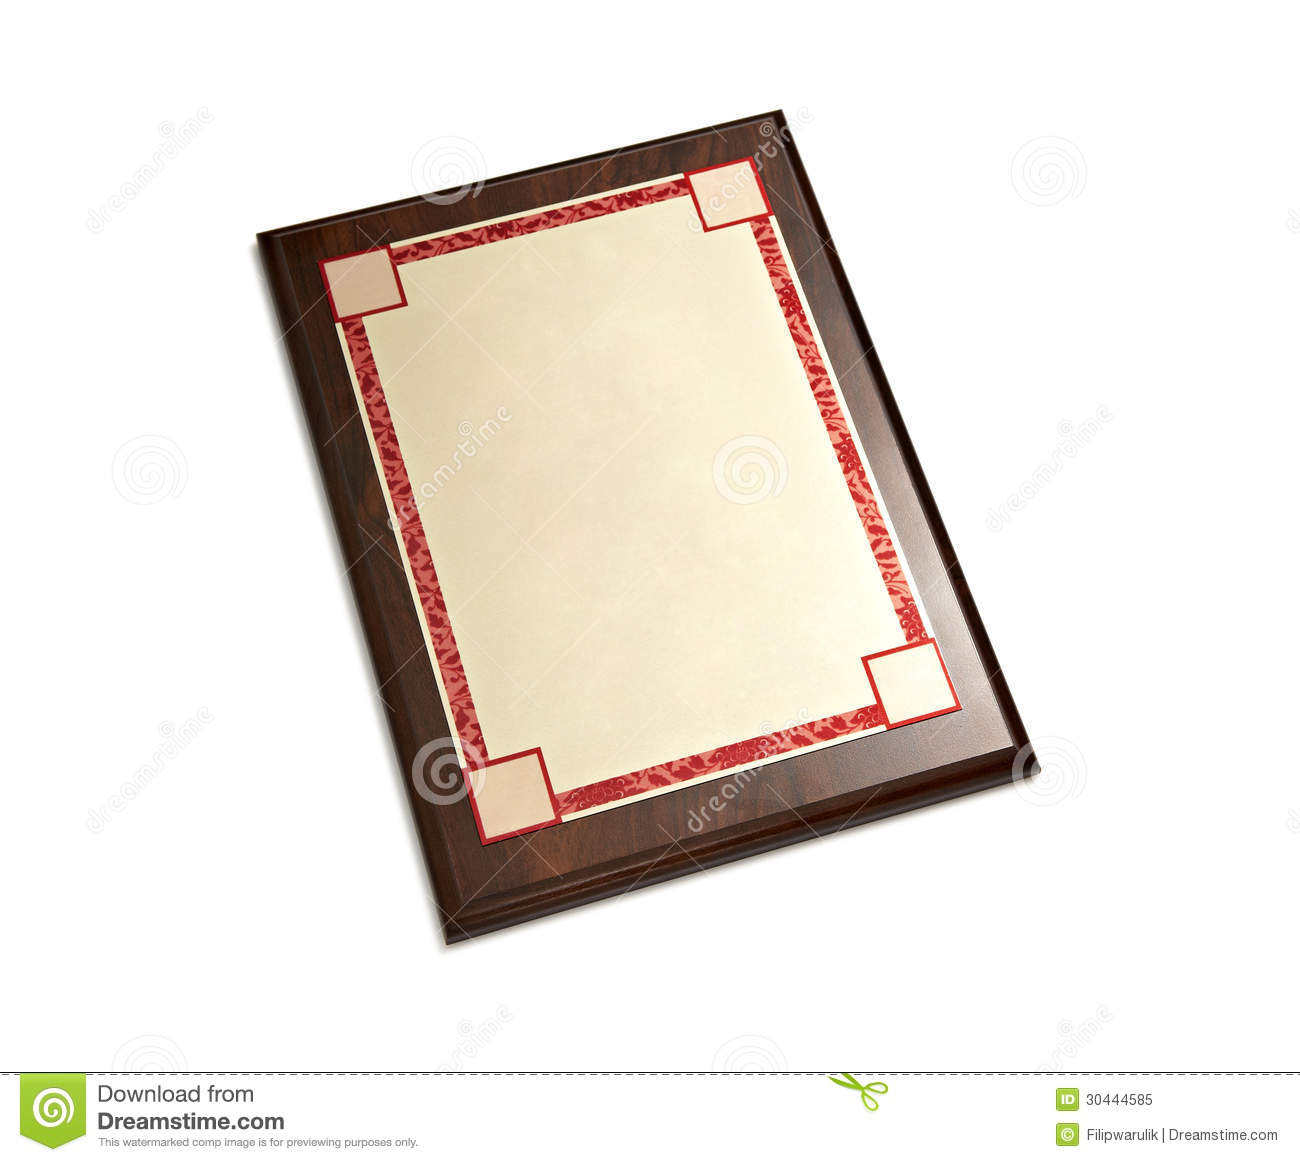 Diploma Frame stock illustration. Illustration of empty - 30444585